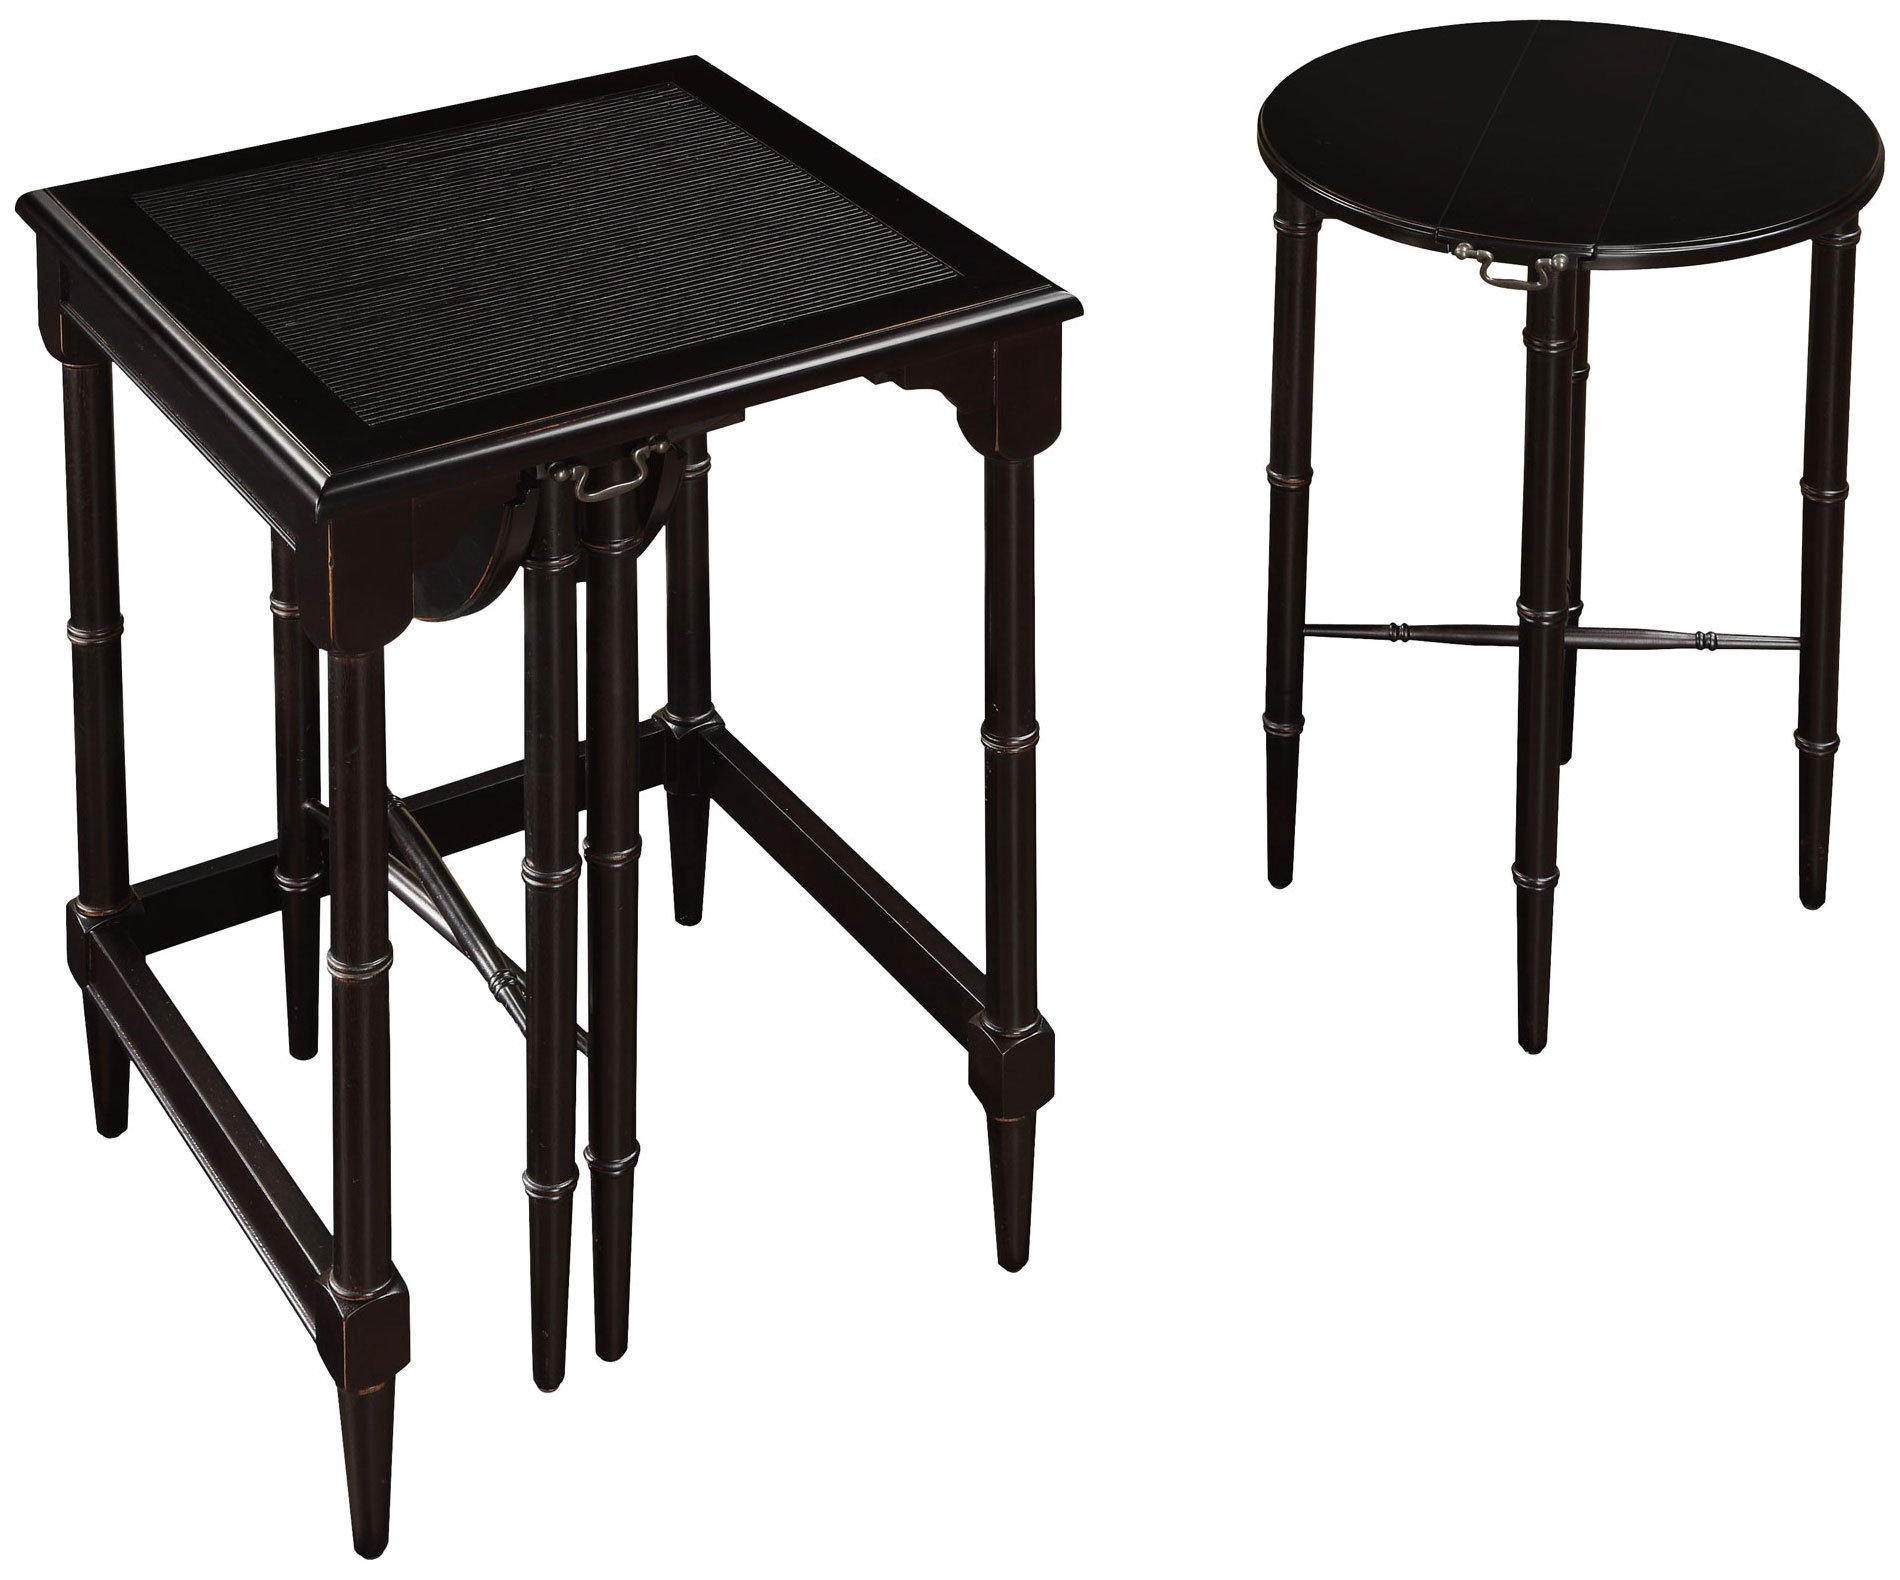 Sterling 6003205 Melbourne Traditional Asian Hardwood Nesting Tables, 24-Inch, Ebony